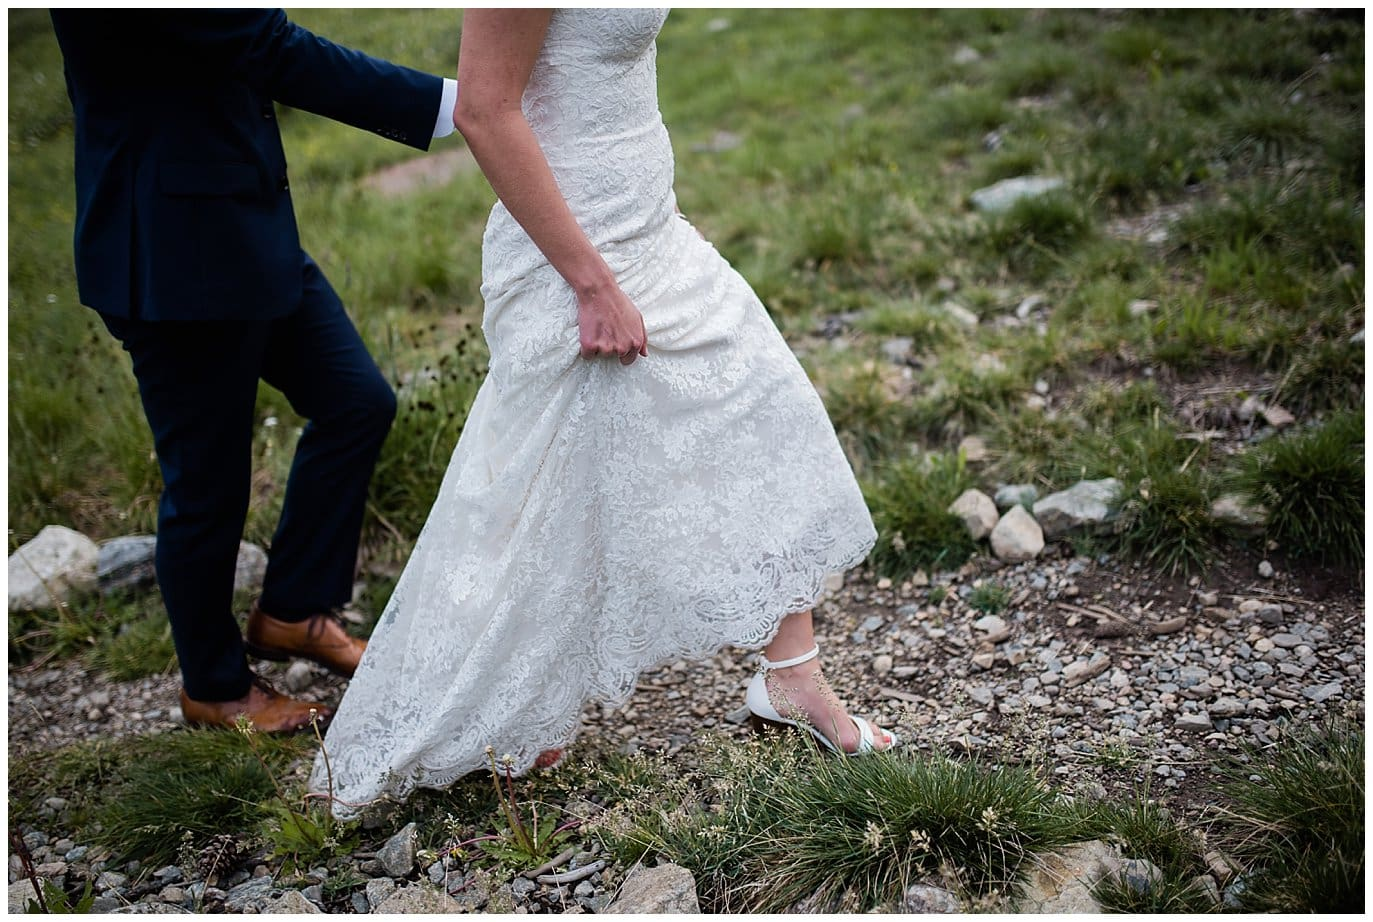 bride in lace dress and heels walking at Arapahoe Basin Black Mountain Lodge Wedding by Dillon Wedding Photographer Jennie Crate